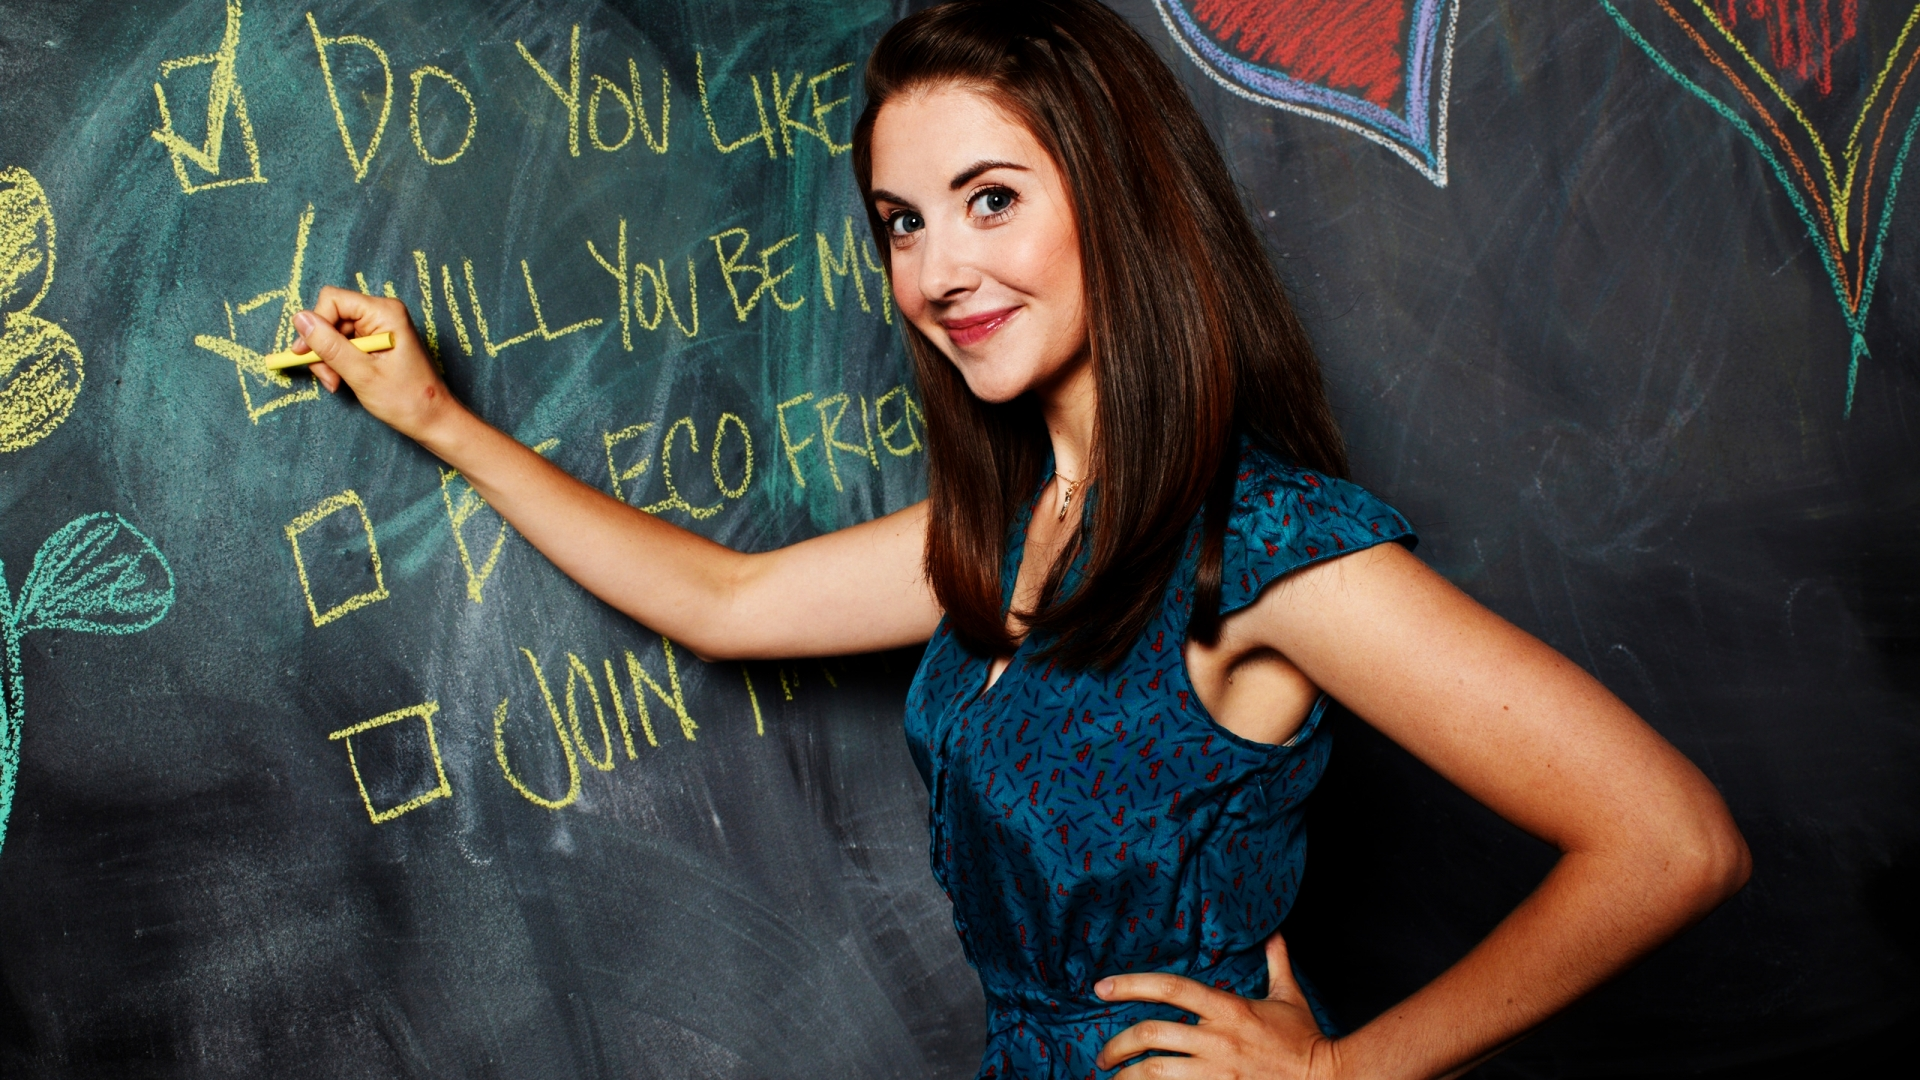 8 Hd Alison Brie Wallpapers-6202